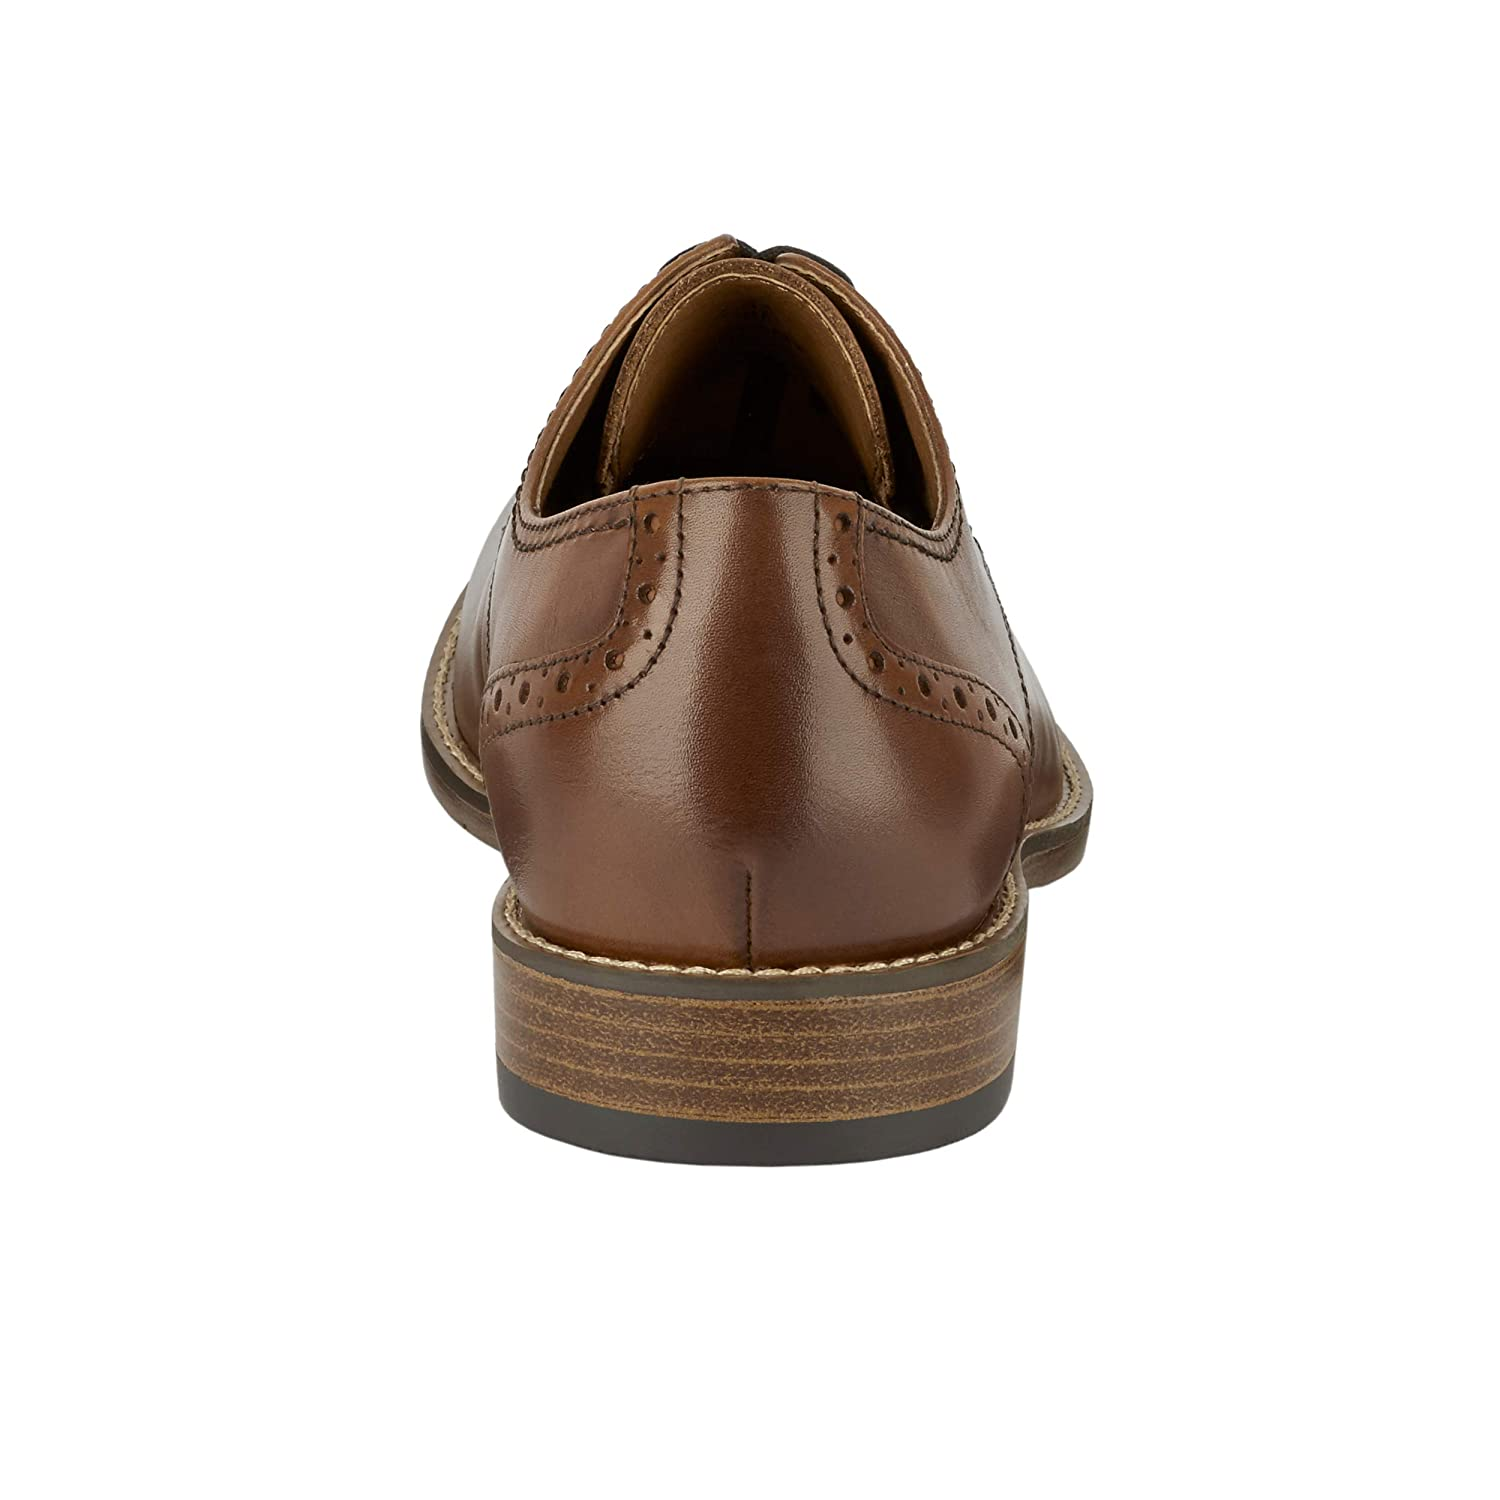 Dockers - Richland Herren Butterscotch Butterscotch Butterscotch e03e85